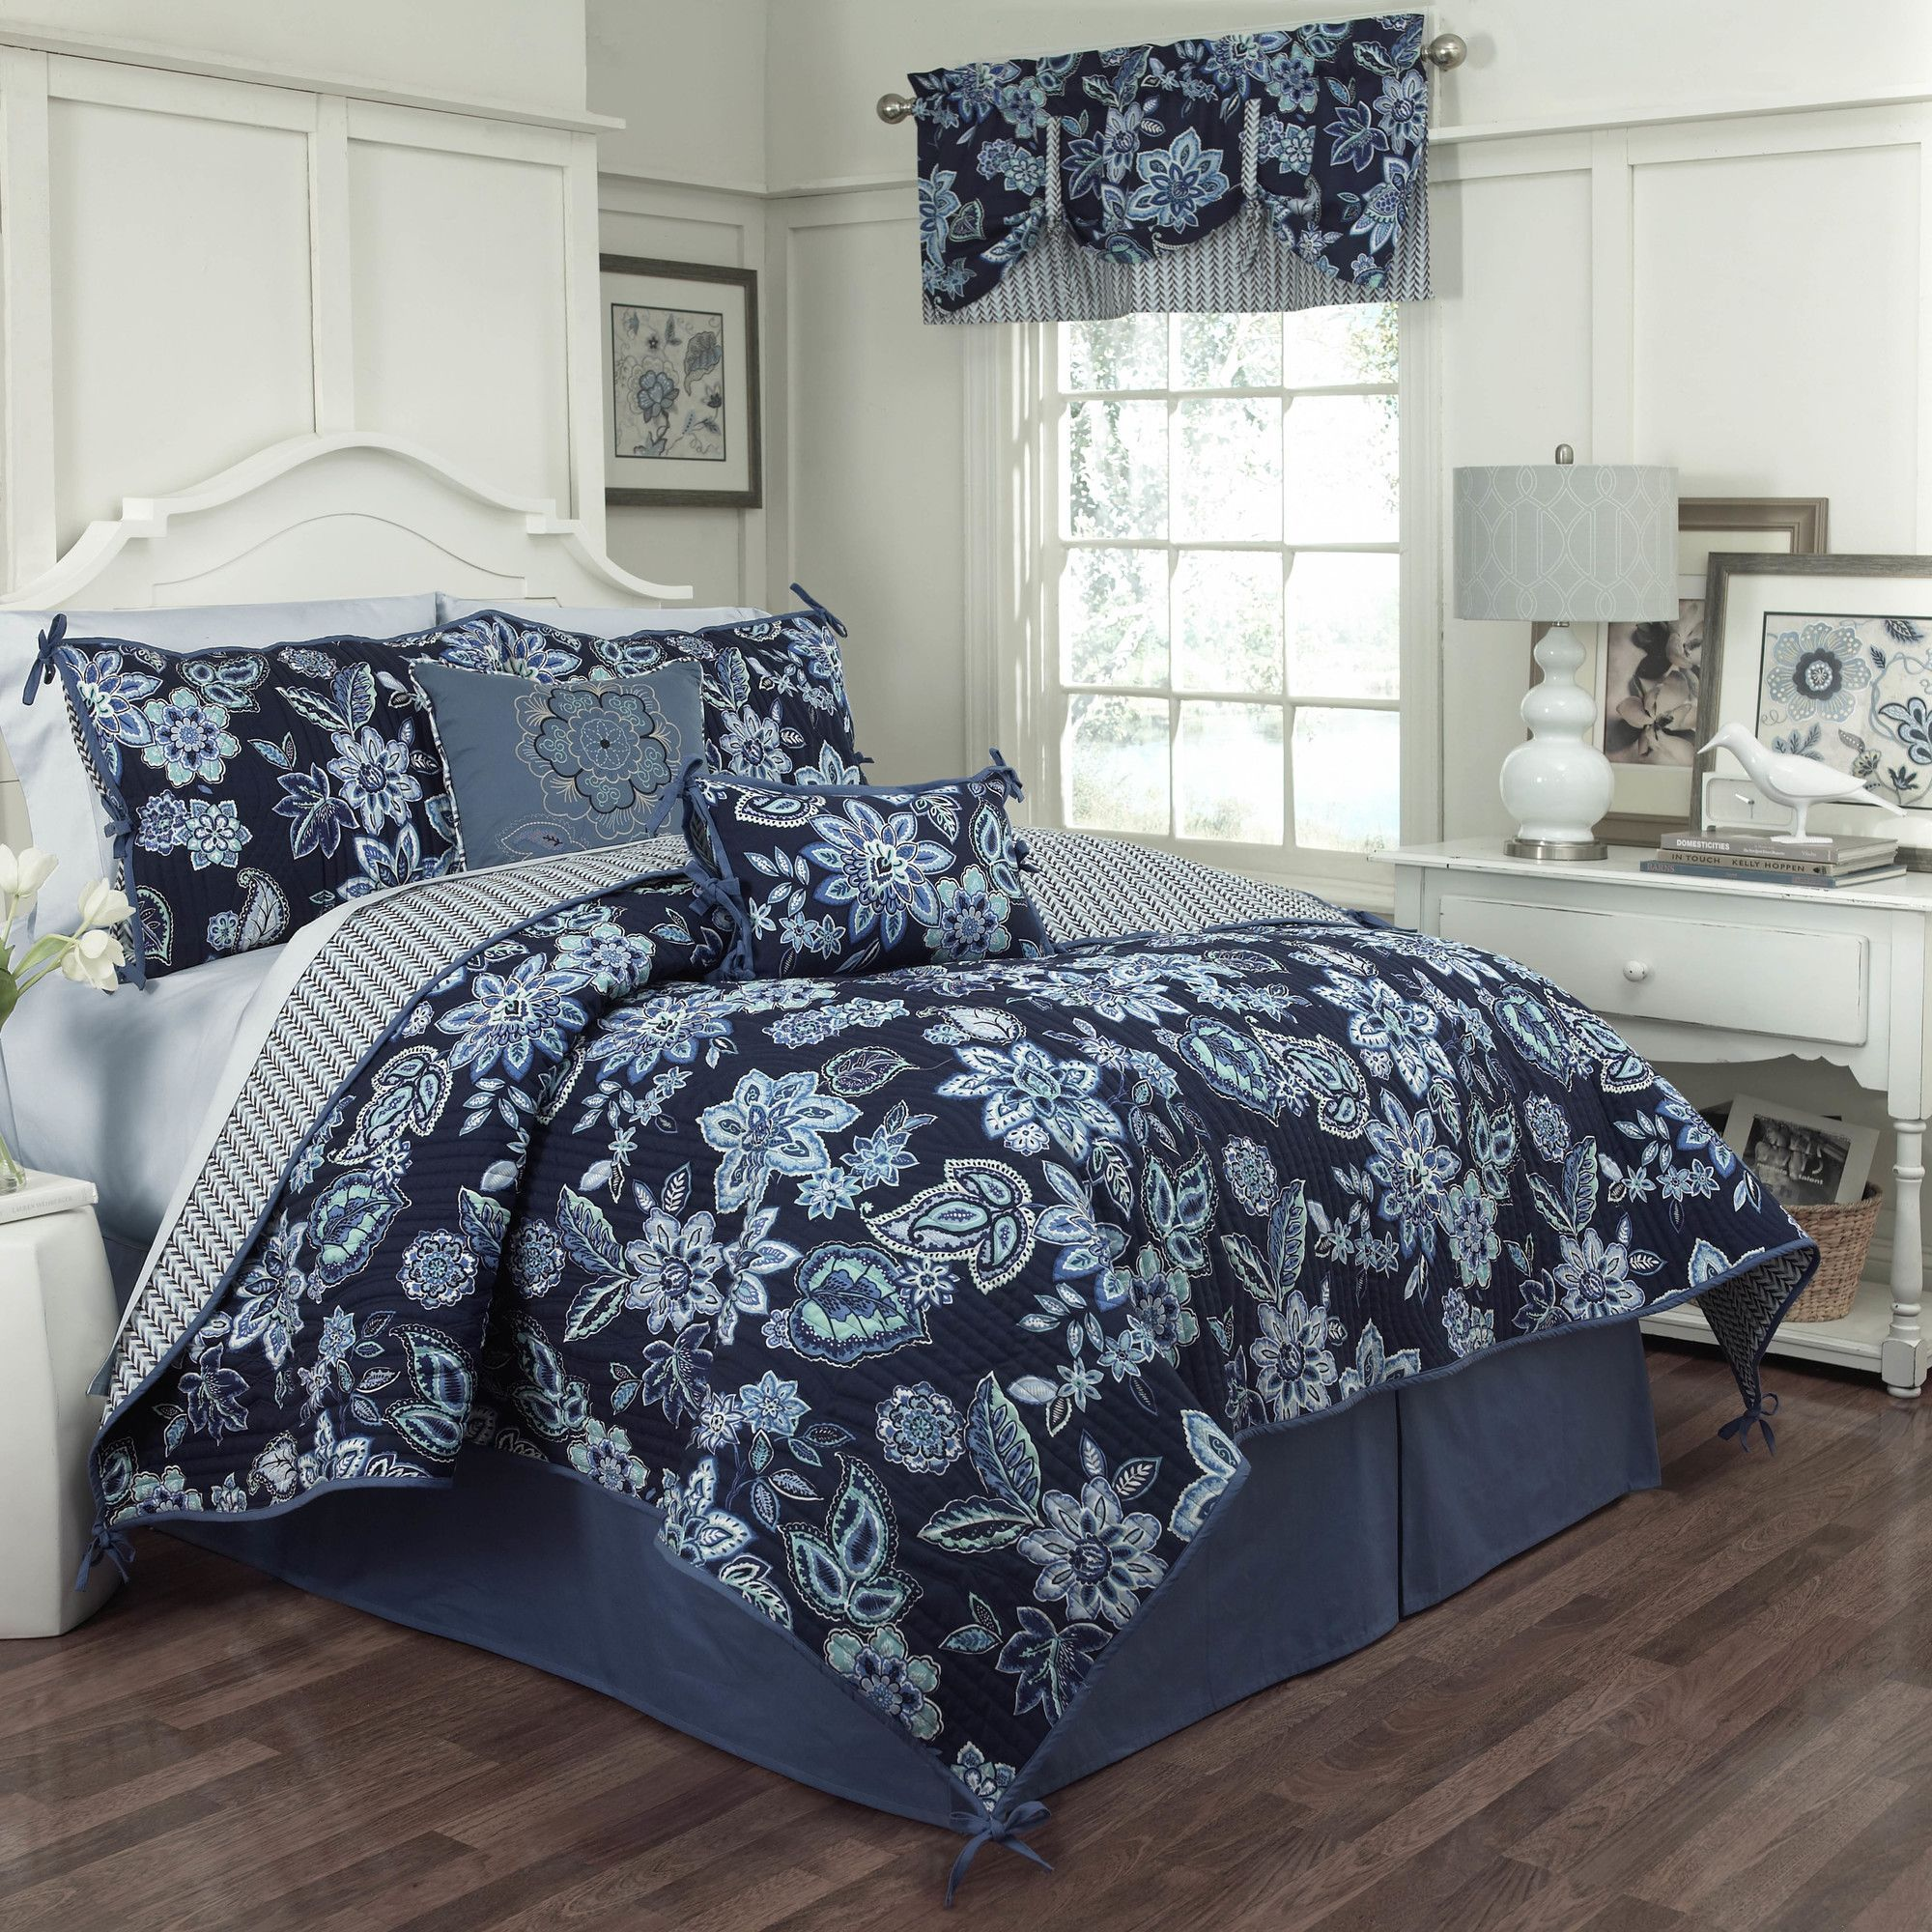 curtain a comforter bedroom from bag set country and for sets in curtains bed the giveaway kaleidoscope decoration size bedspreads queen